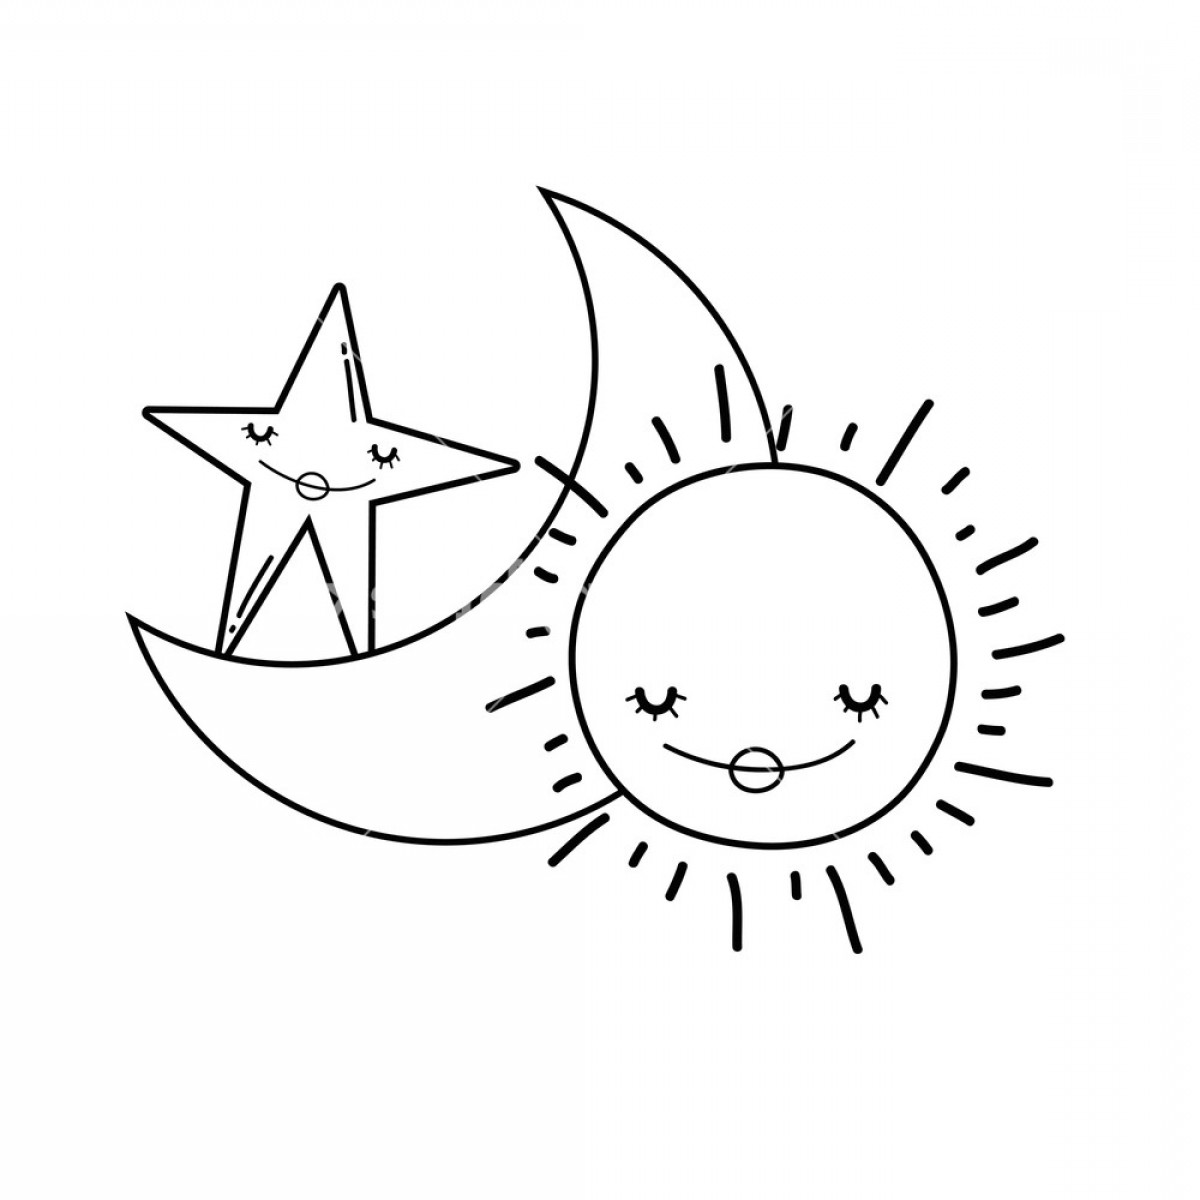 Smile Vector Art: Moon And Sun Smiling With Star Cute Cartoons Vector Illustration Graphic Design Hqjhfbhqjnqlqyn